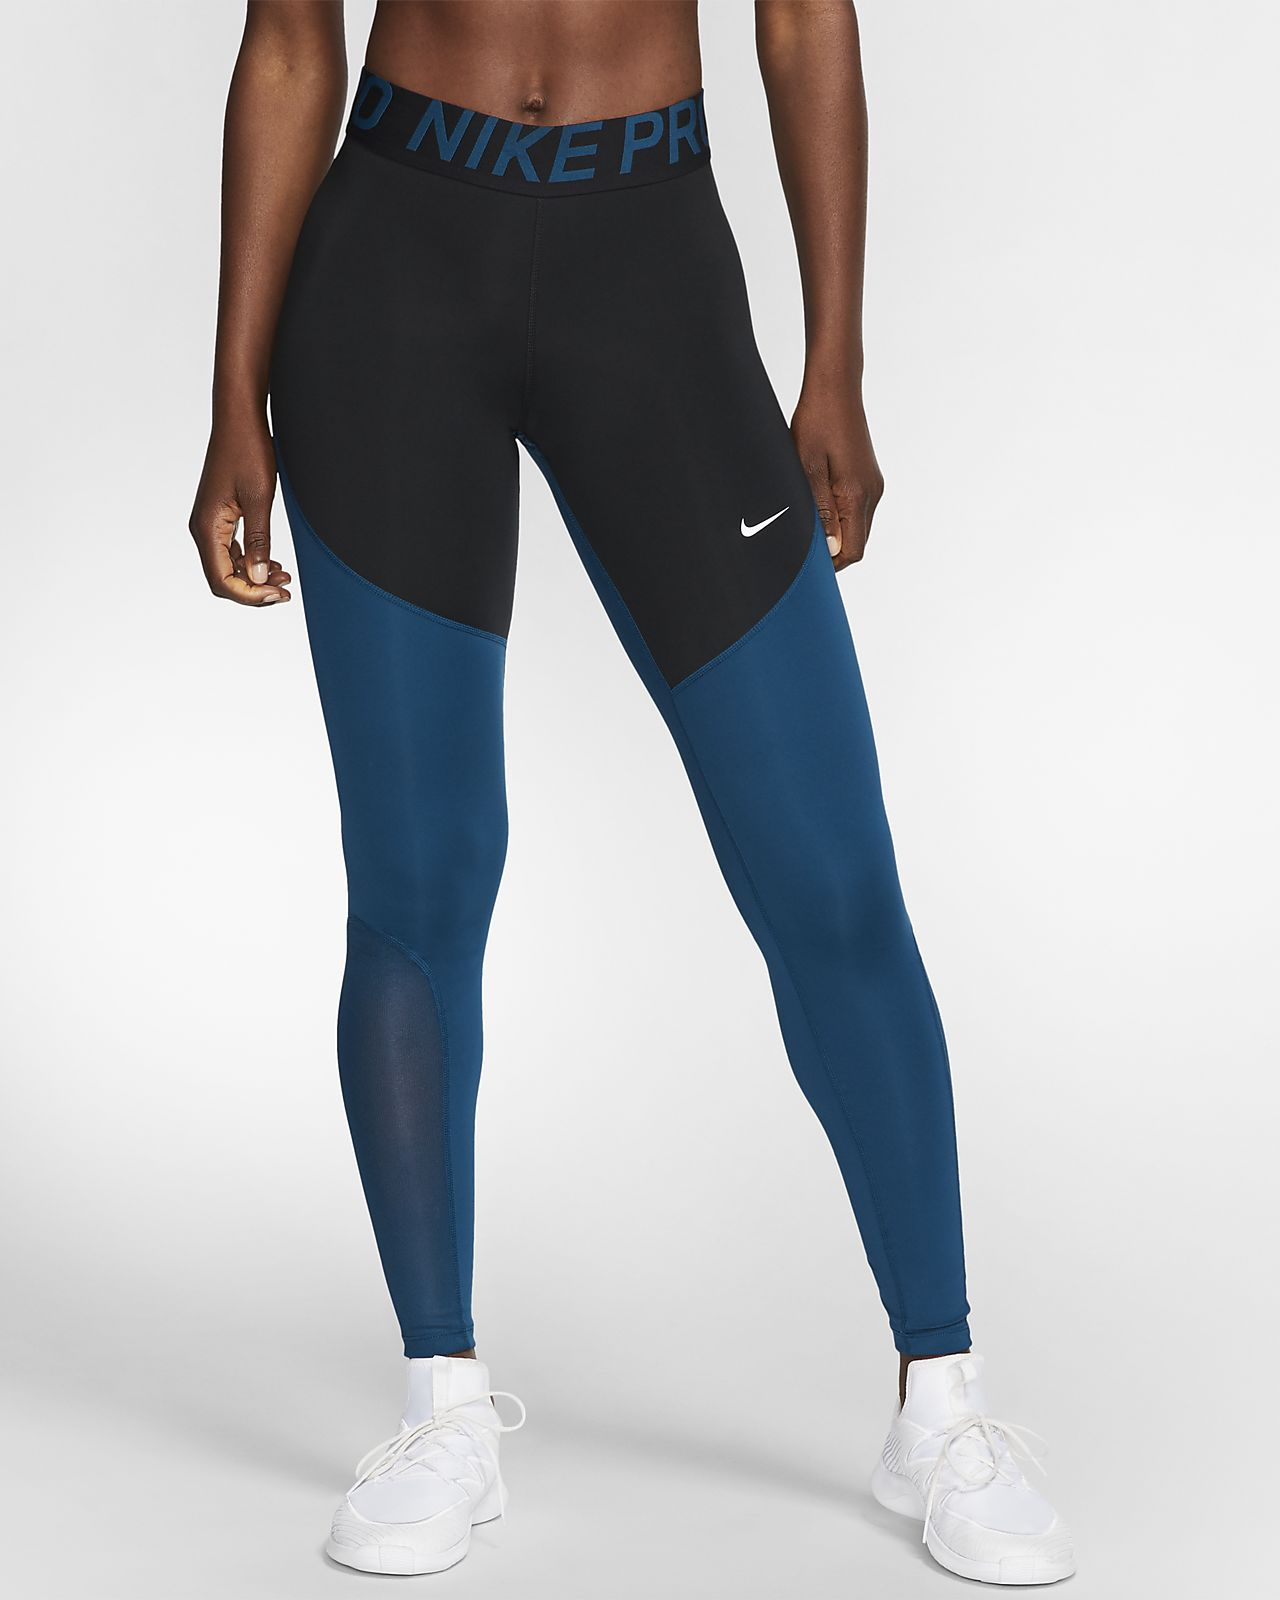 Tights Nike Pro Donna